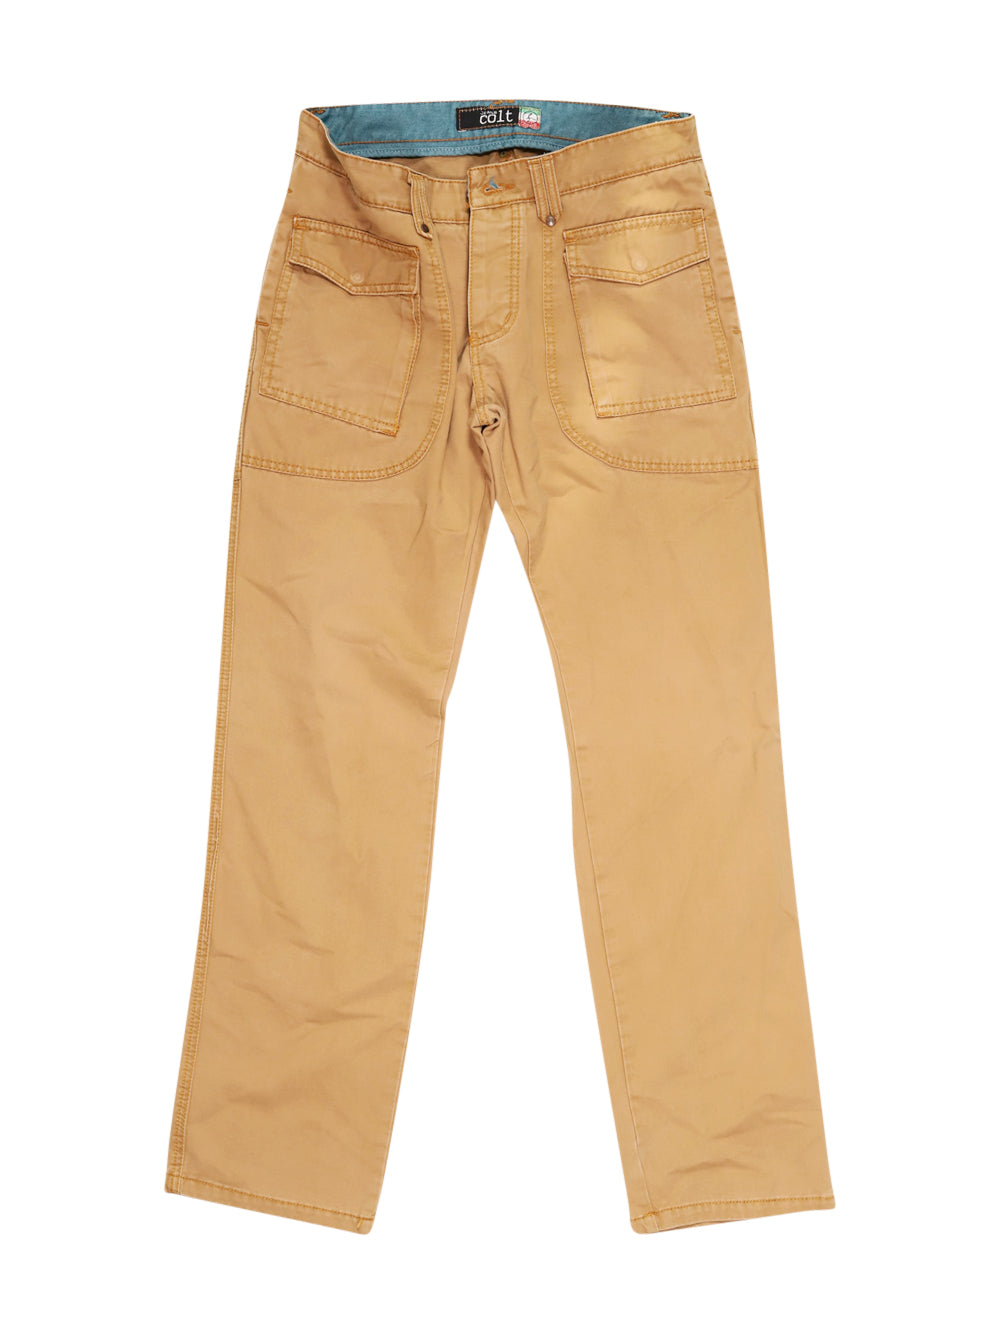 Front photo of Preloved colt Brown Man's trousers - size 38/M